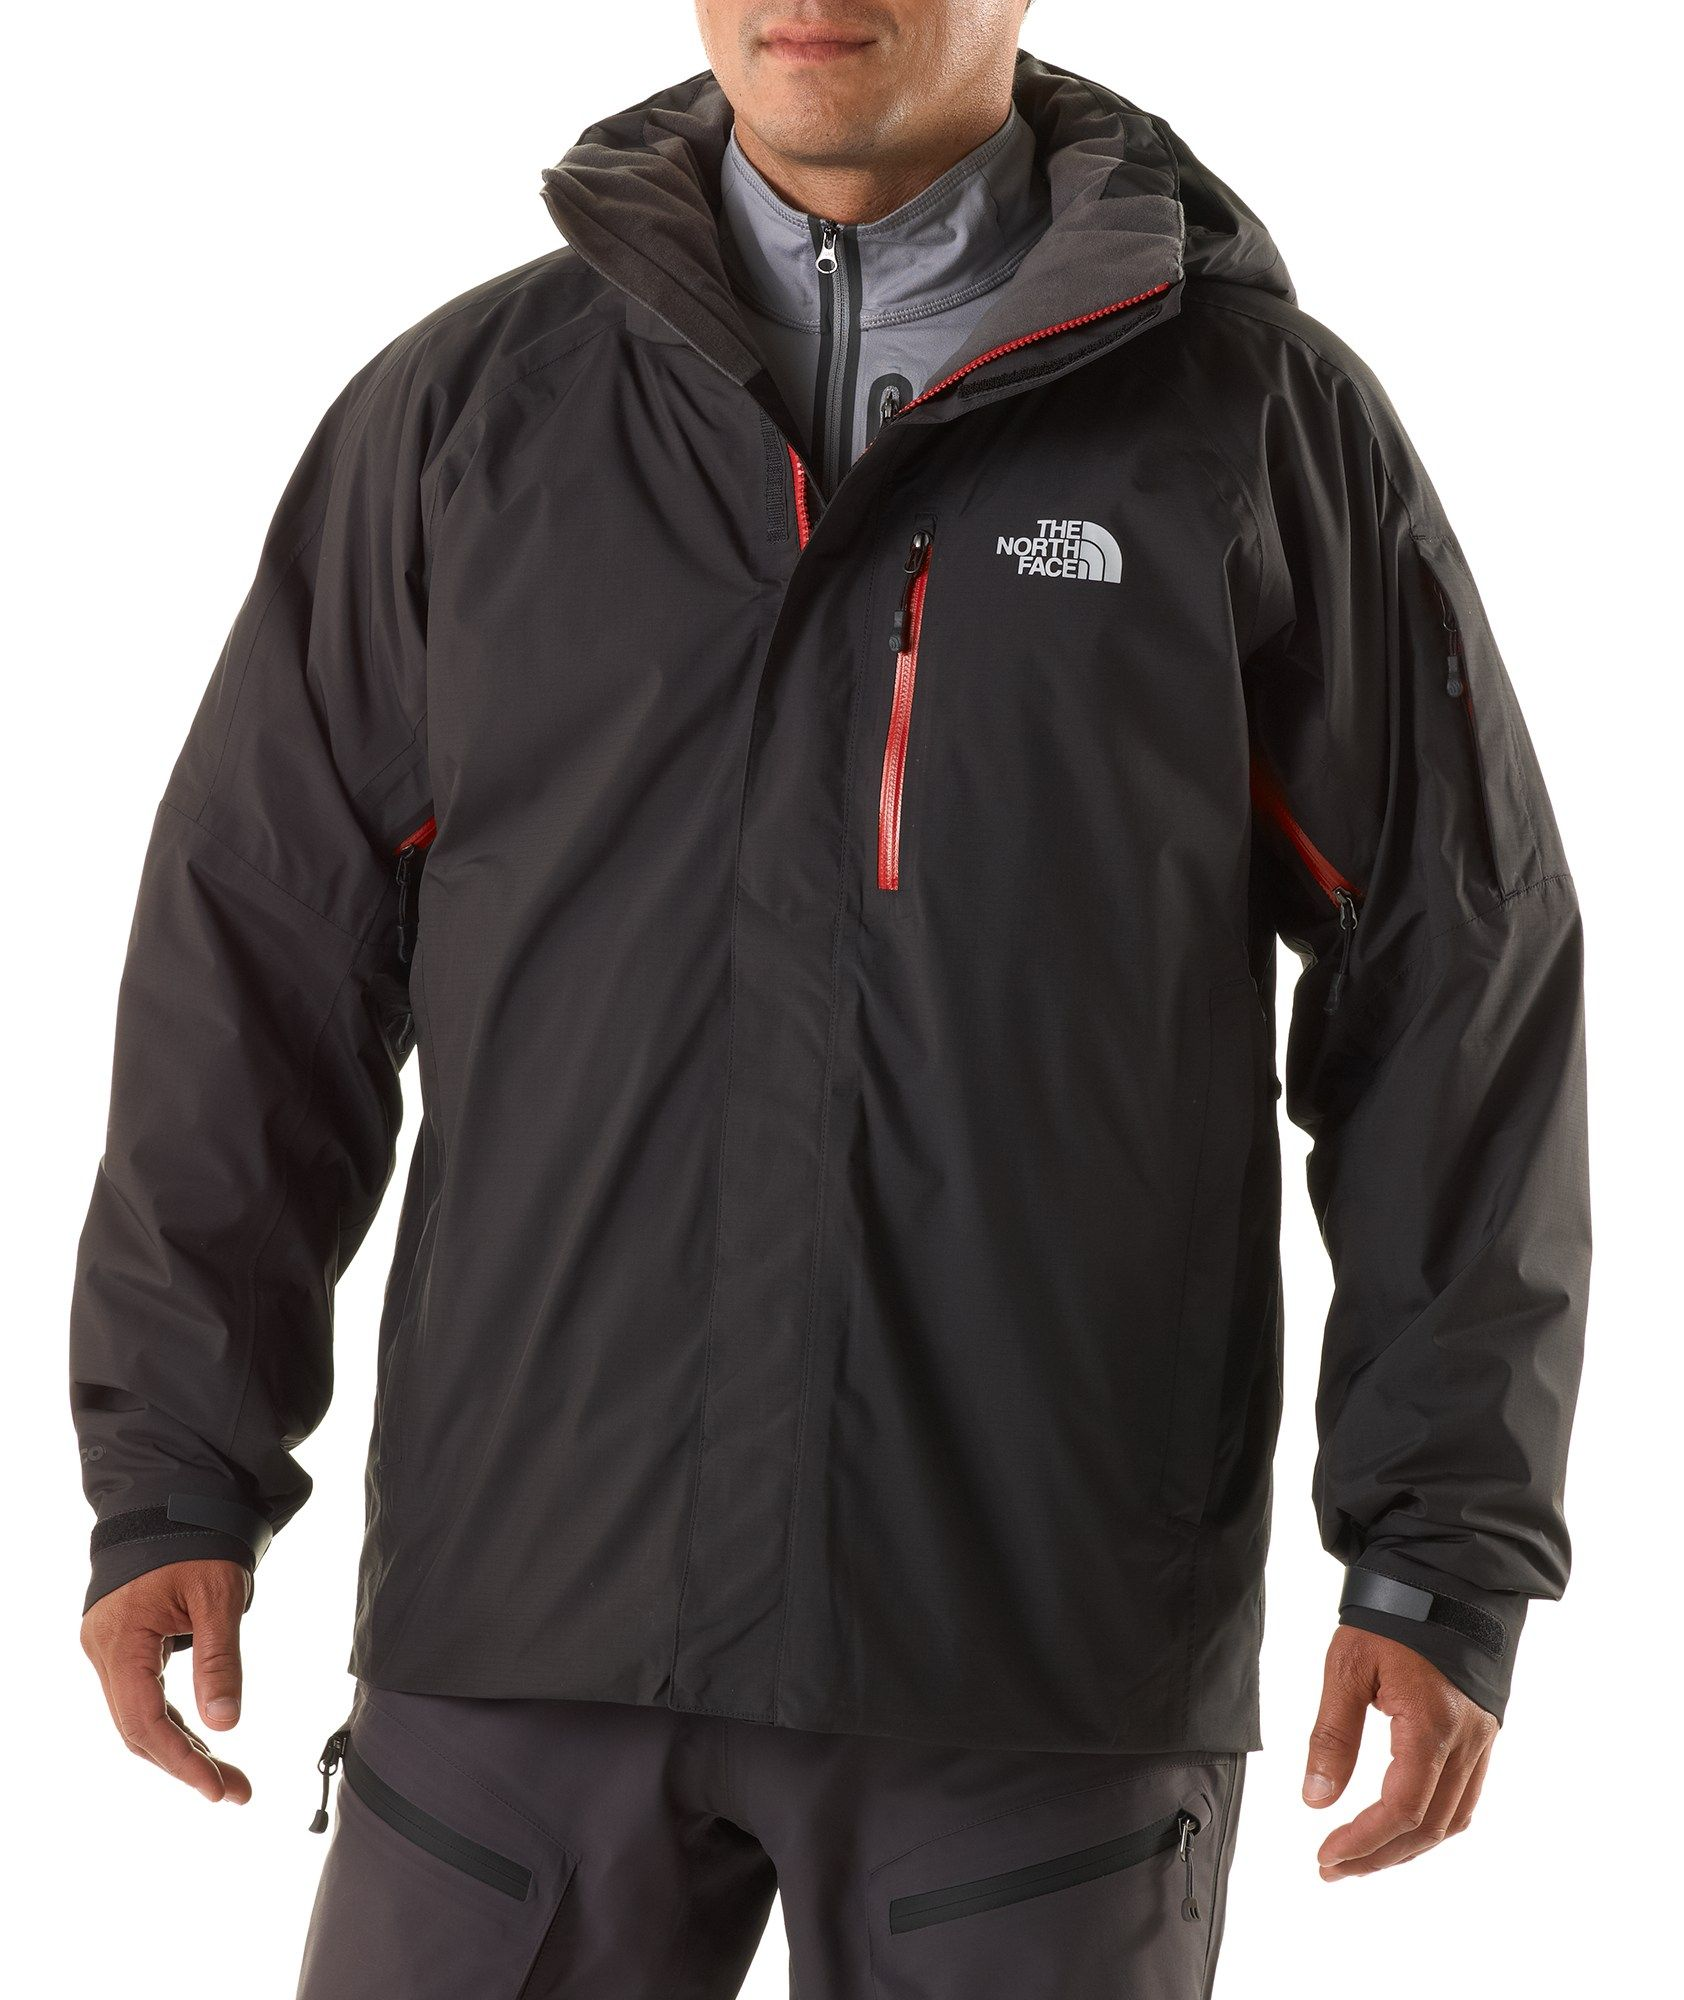 The North Face Kapwall Insulated Jacket Men S Rei Co Op Insulated Jackets Mens Jackets Jackets [ 2000 x 1684 Pixel ]